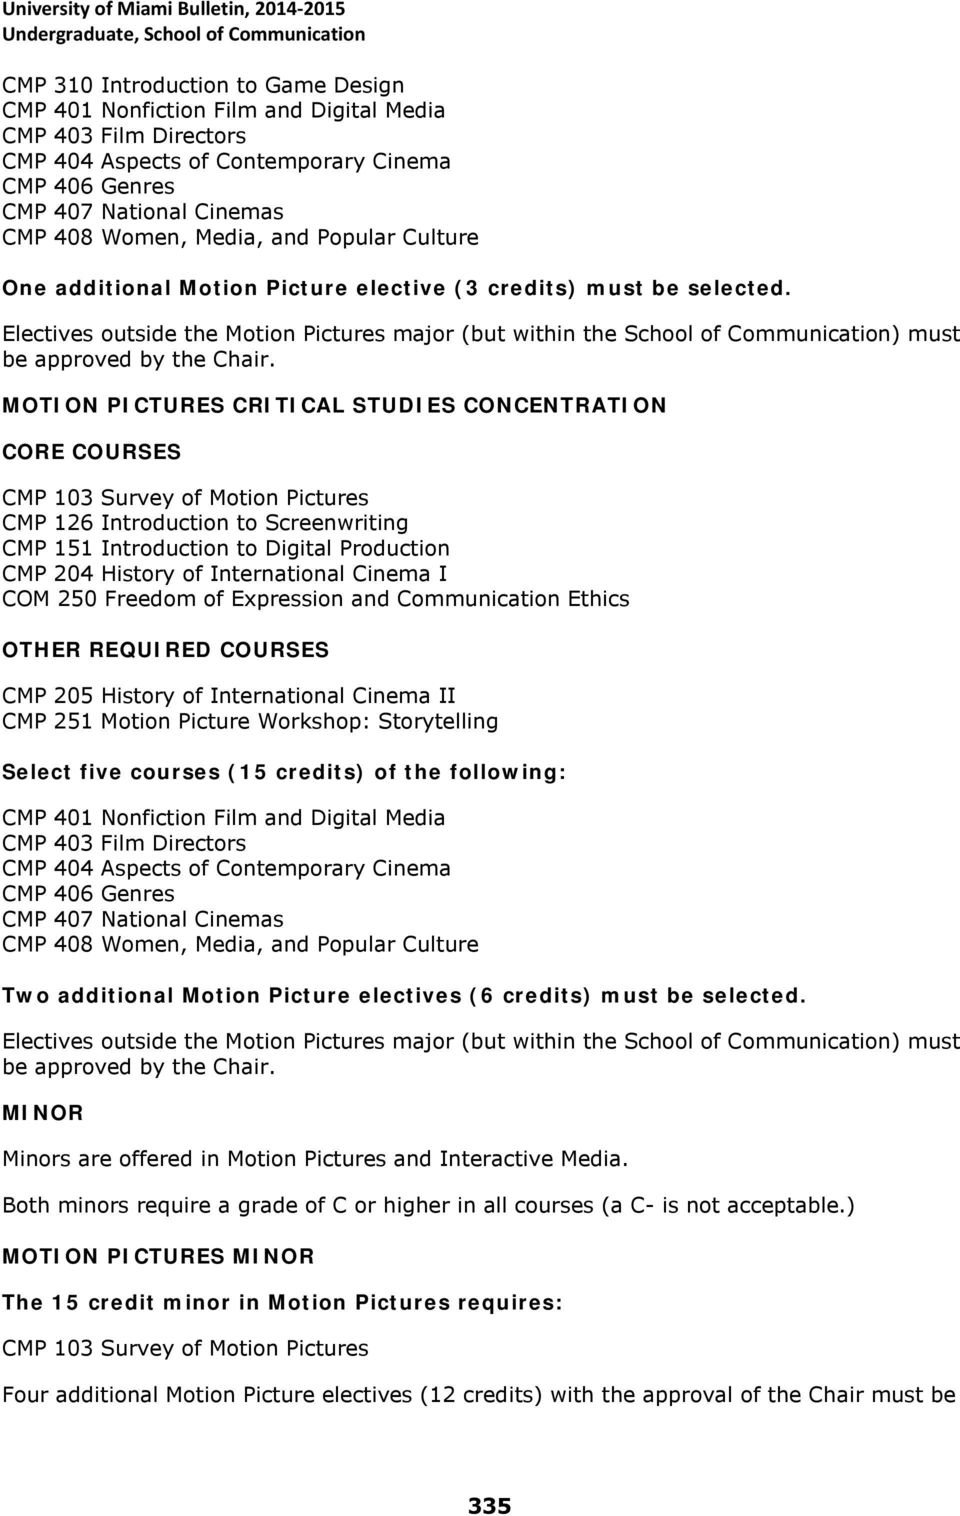 Electives outside the Motion Pictures major (but within the School of Communication) must be approved by the Chair.